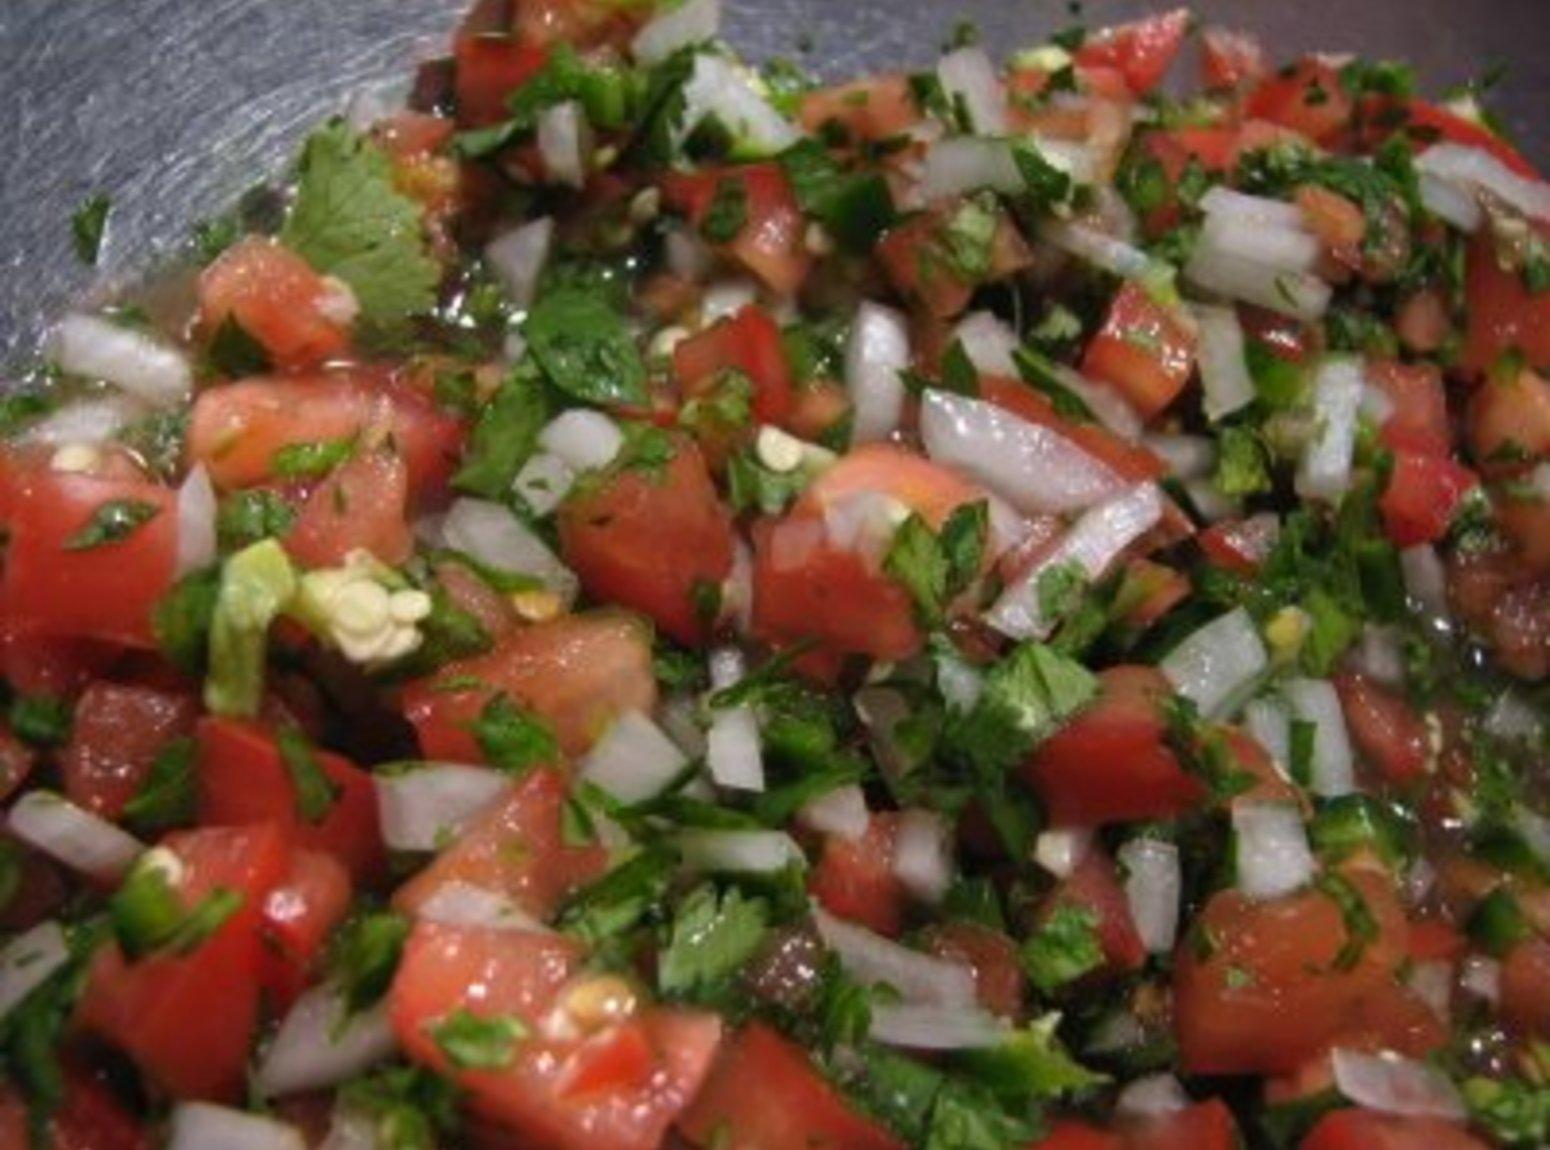 Pico de Gallo (Salsa Cruda, Salsa Fresca) Recipe | Just A Pinch ...